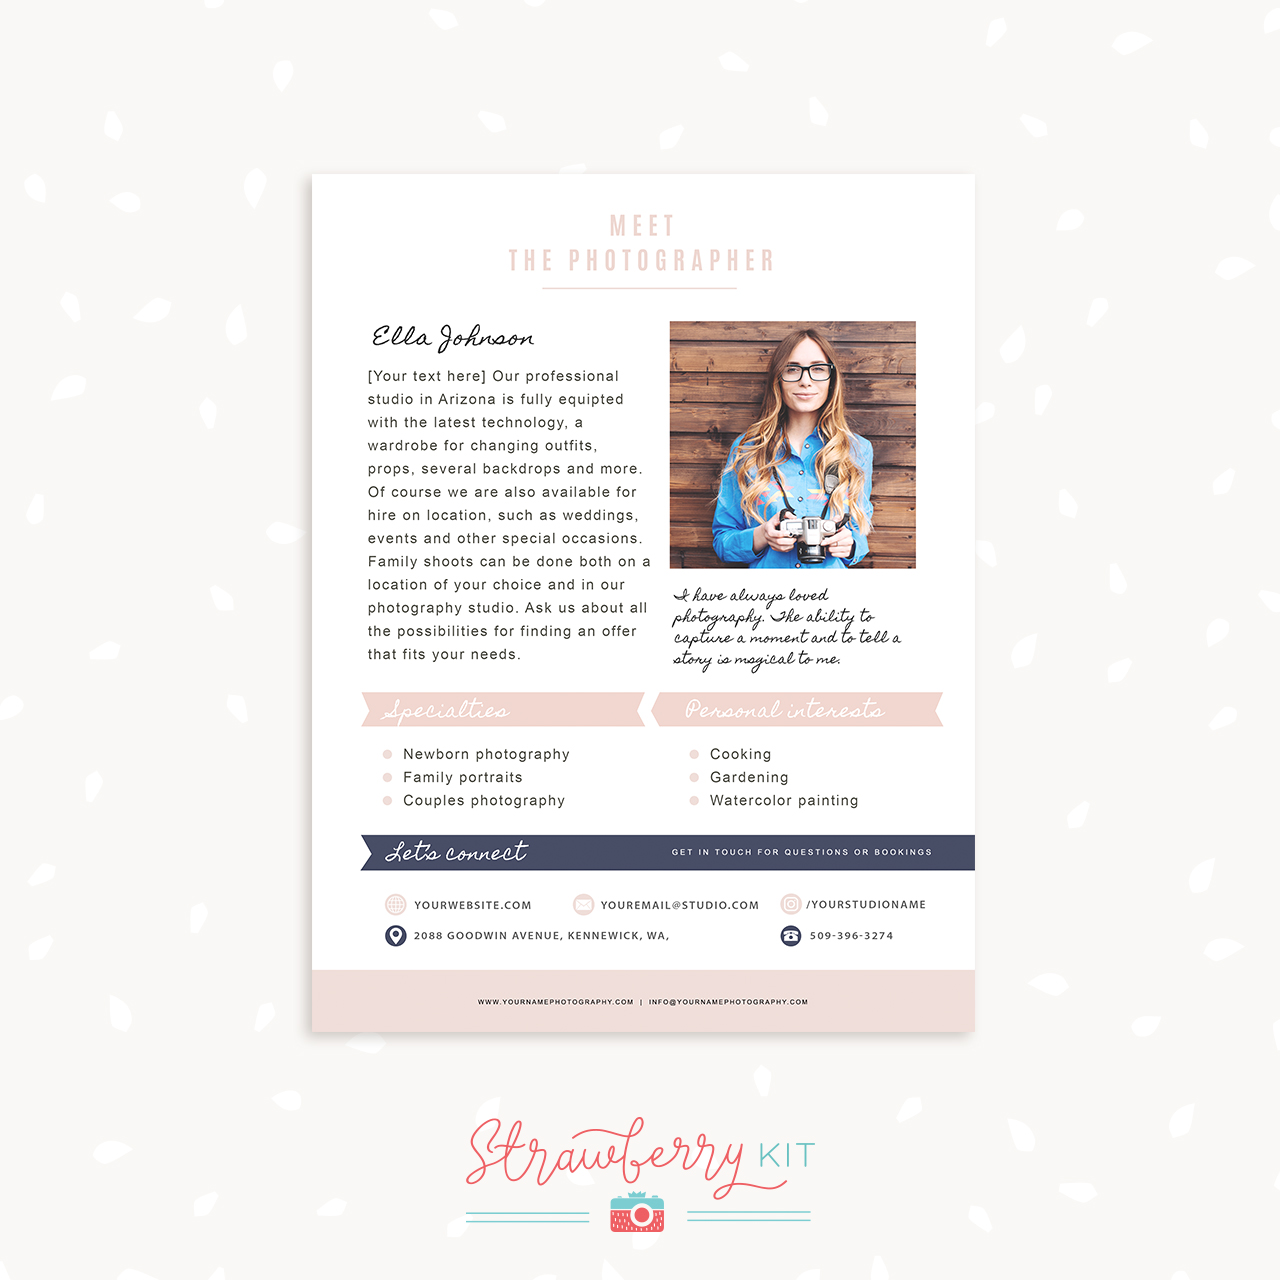 Photography about me page template strawberry kit for Wordpress attachment page template